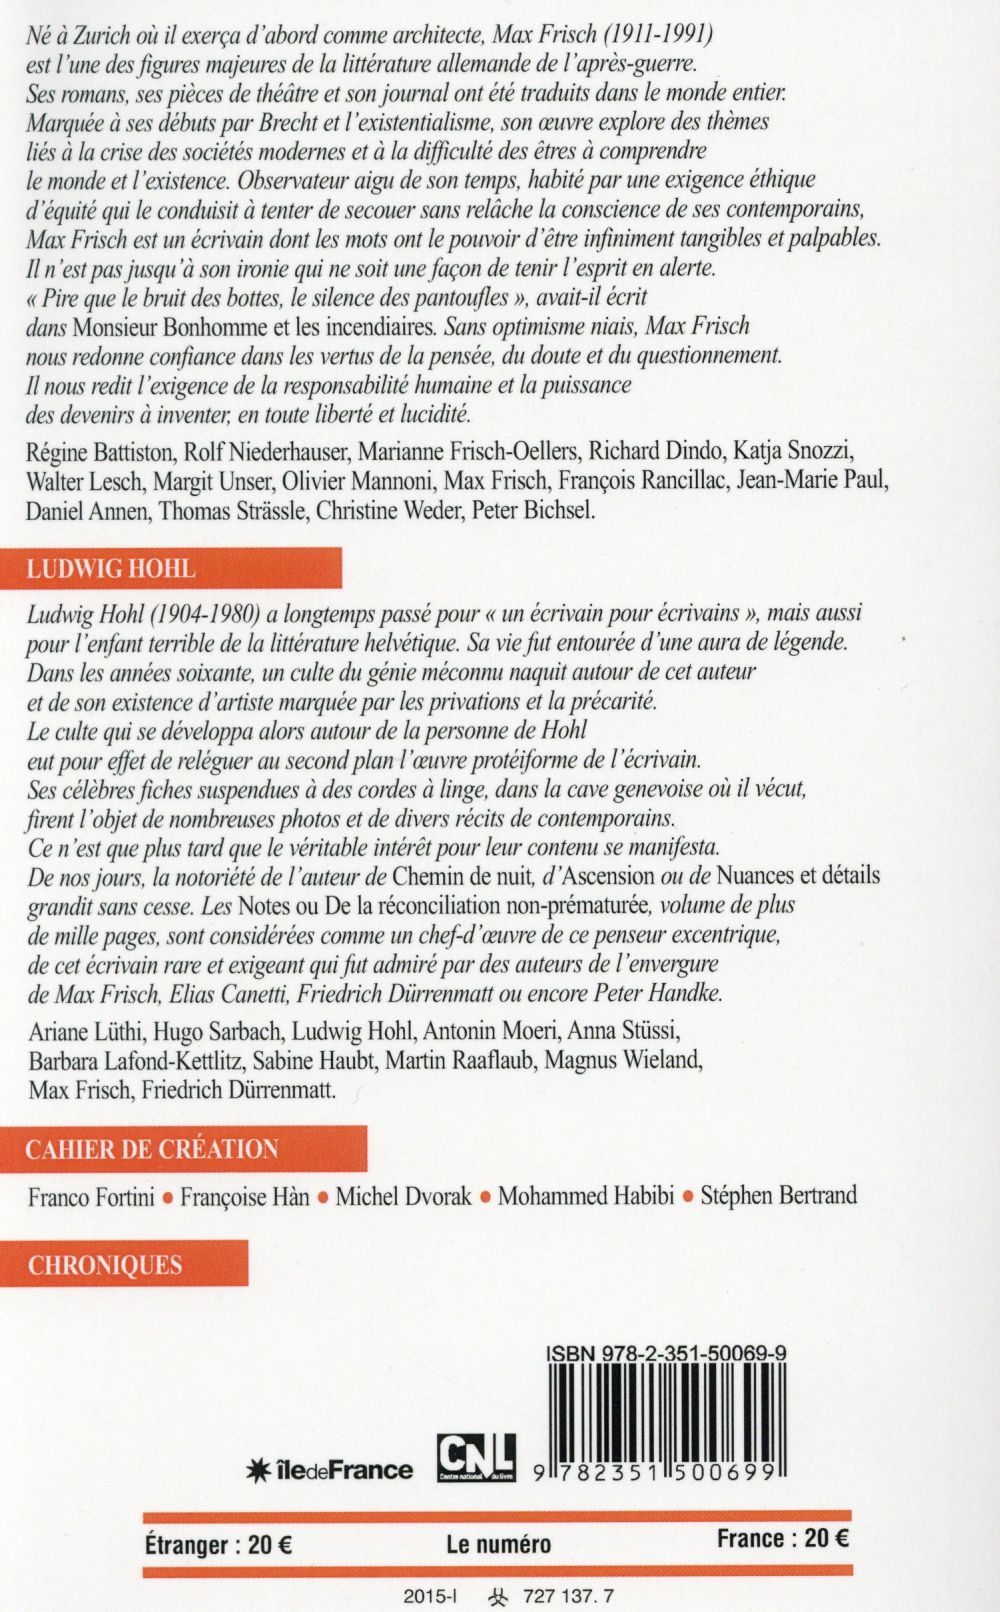 Revue europe t.1029; 1030 ; max frisch-ludwig hohl ; janv-fevrier 2015